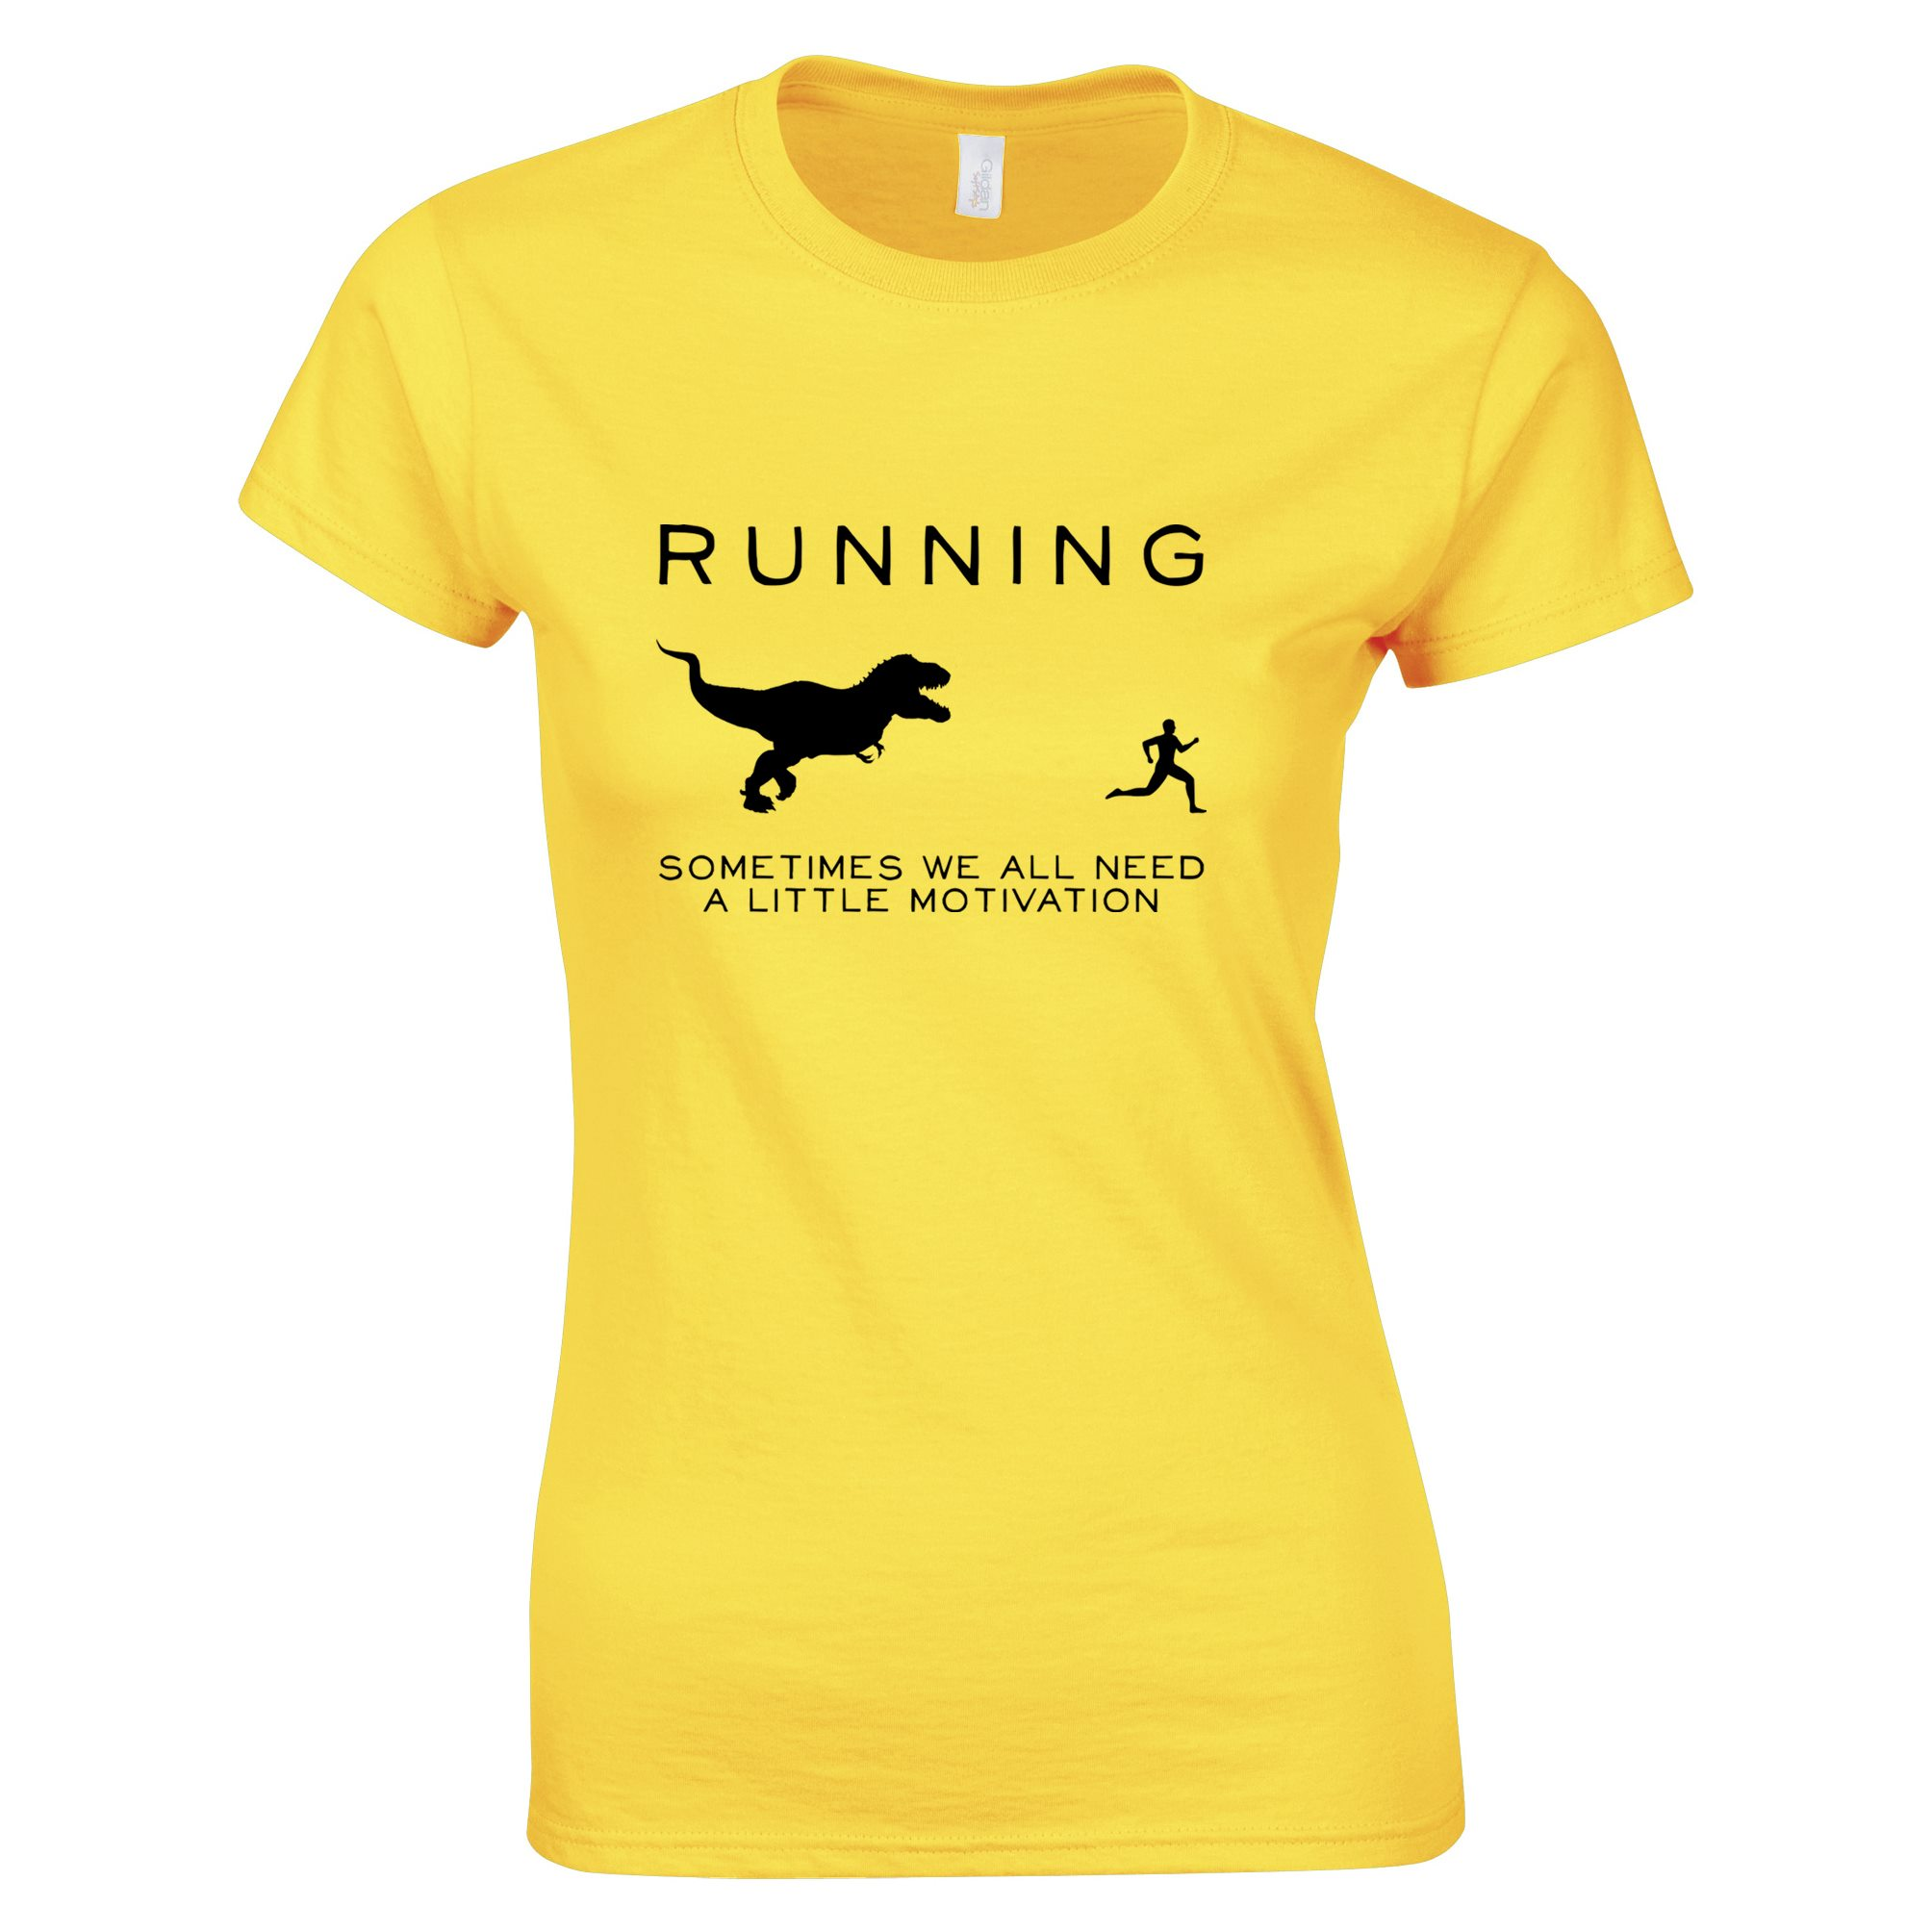 Find Women's Running Tops & T-Shirts at trueufile8d.tk Enjoy free shipping and returns with NikePlus.